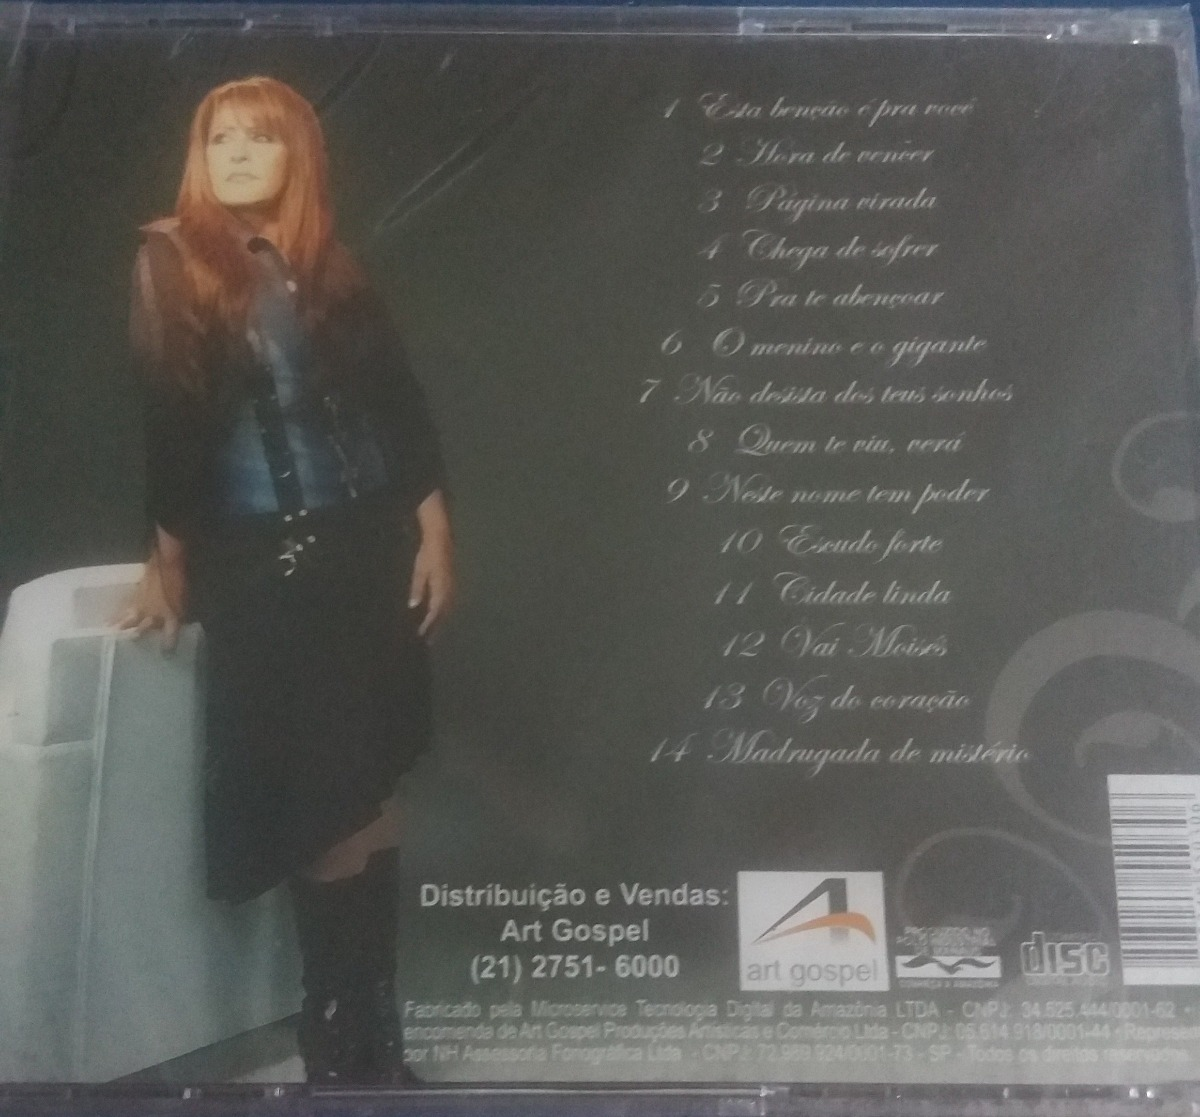 cd shirley carvalhaes pagina virada pb